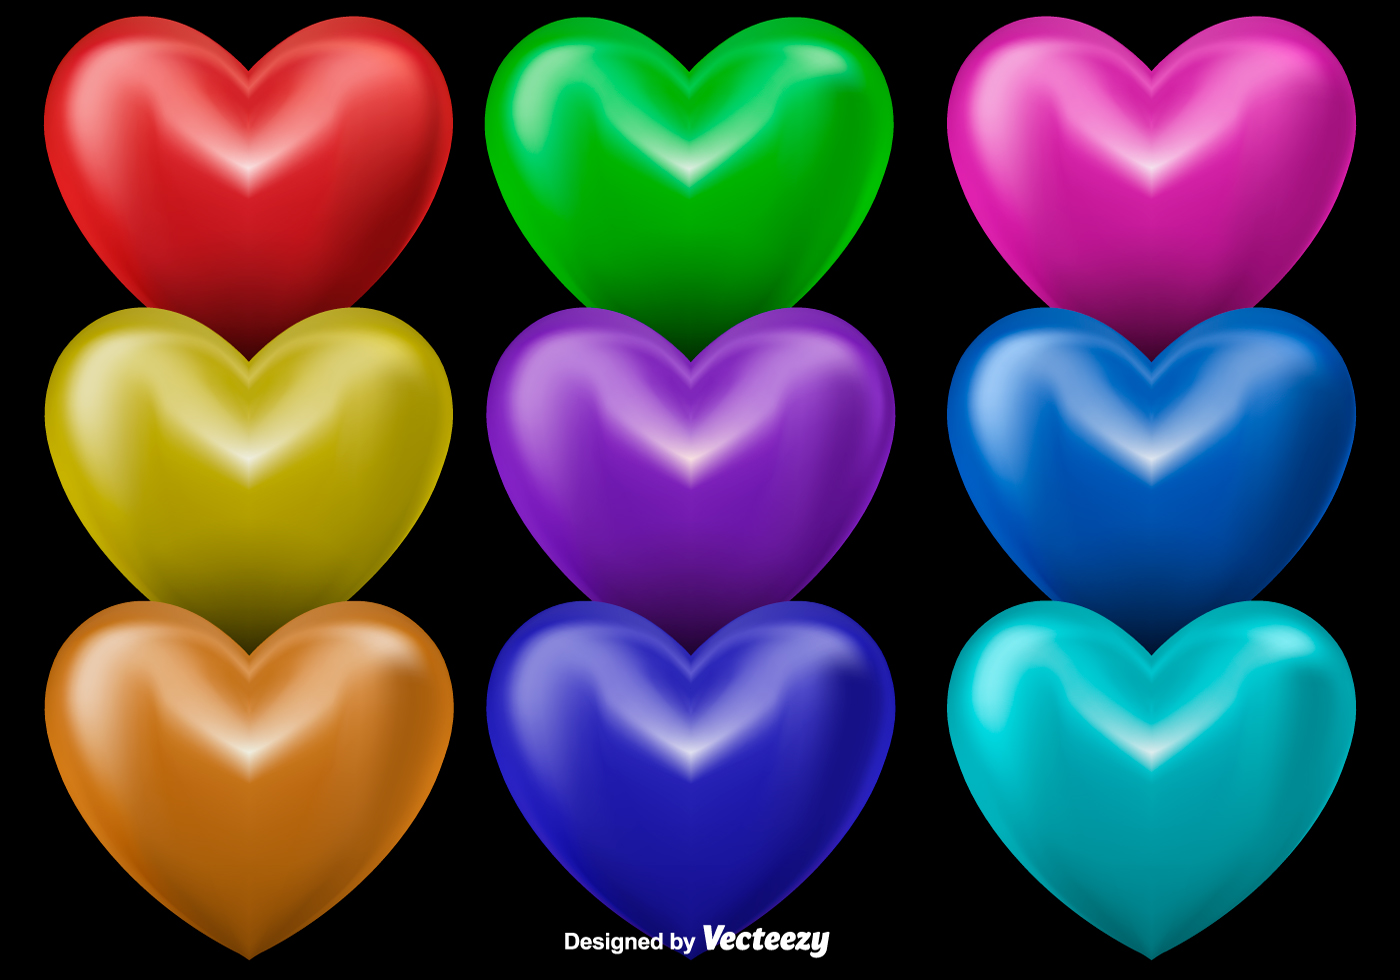 3D Shiny Hearts, Set Of 9 Colorful Hearts - Download Free ...